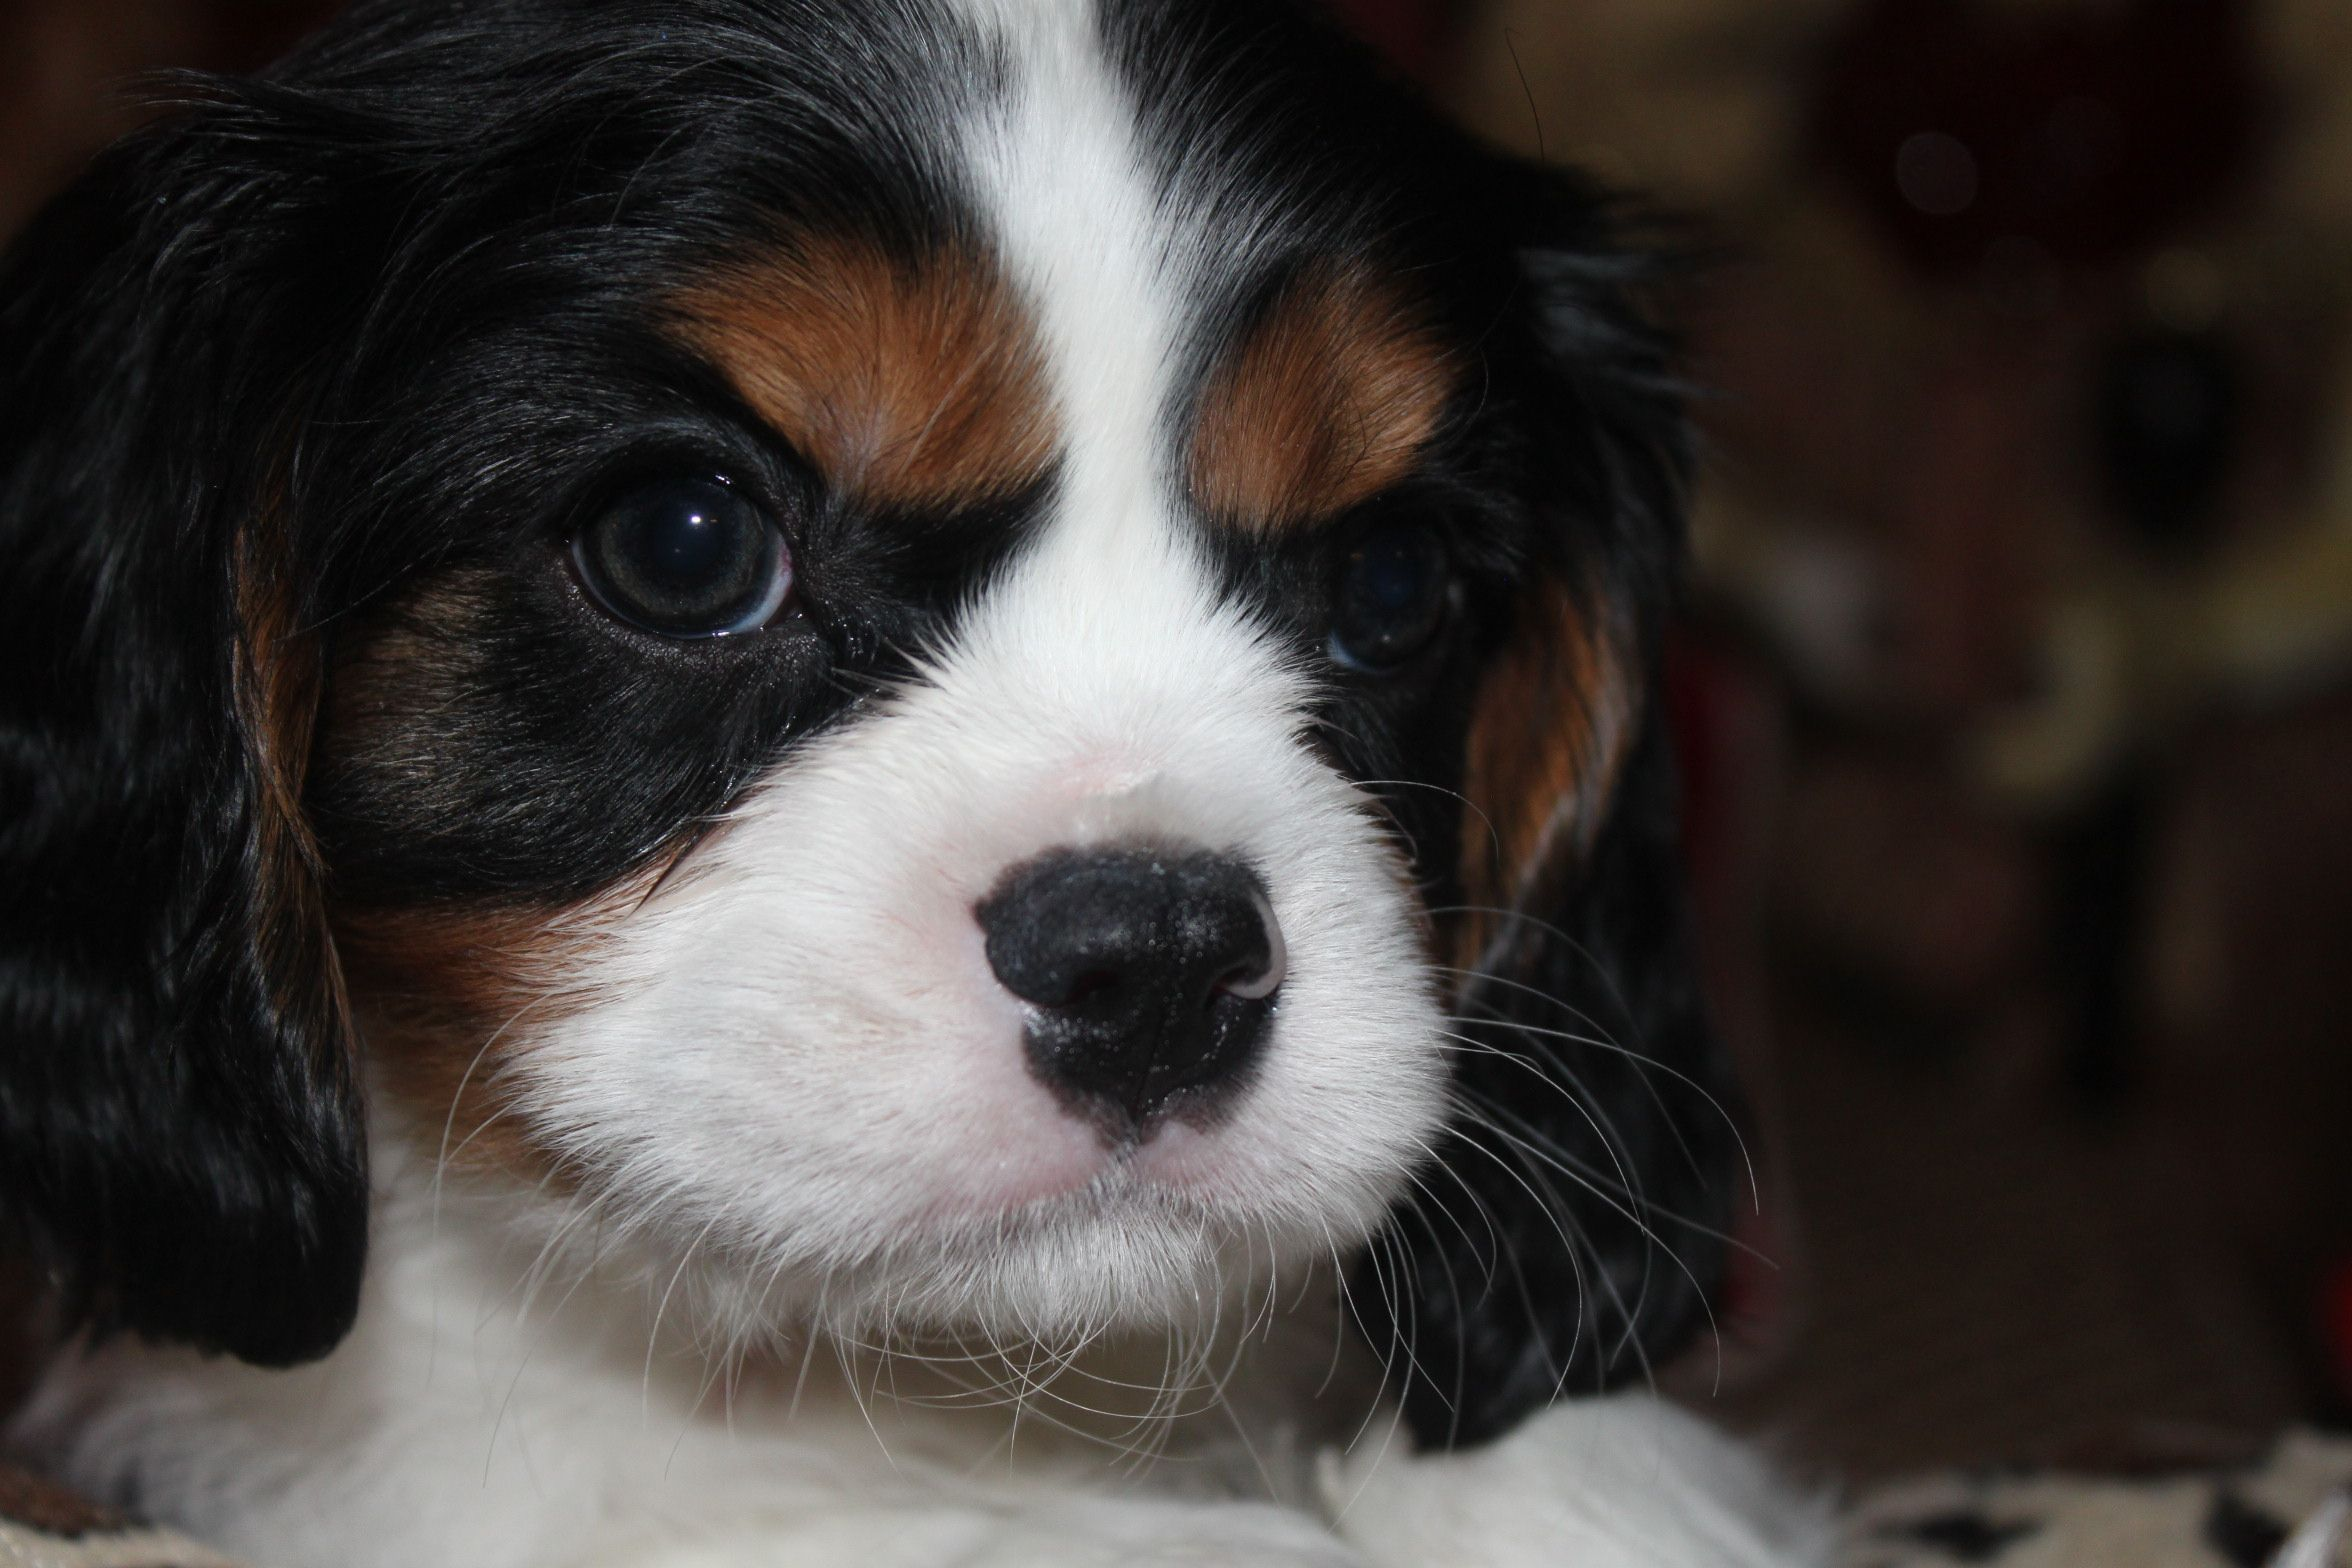 All Romeo S Babies Have Great Eyes Perfect Eyebrow Placement And Full Head Cavalier Puppy Cavalier King Charles Spaniel King Charles Cavalier Spaniel Puppy